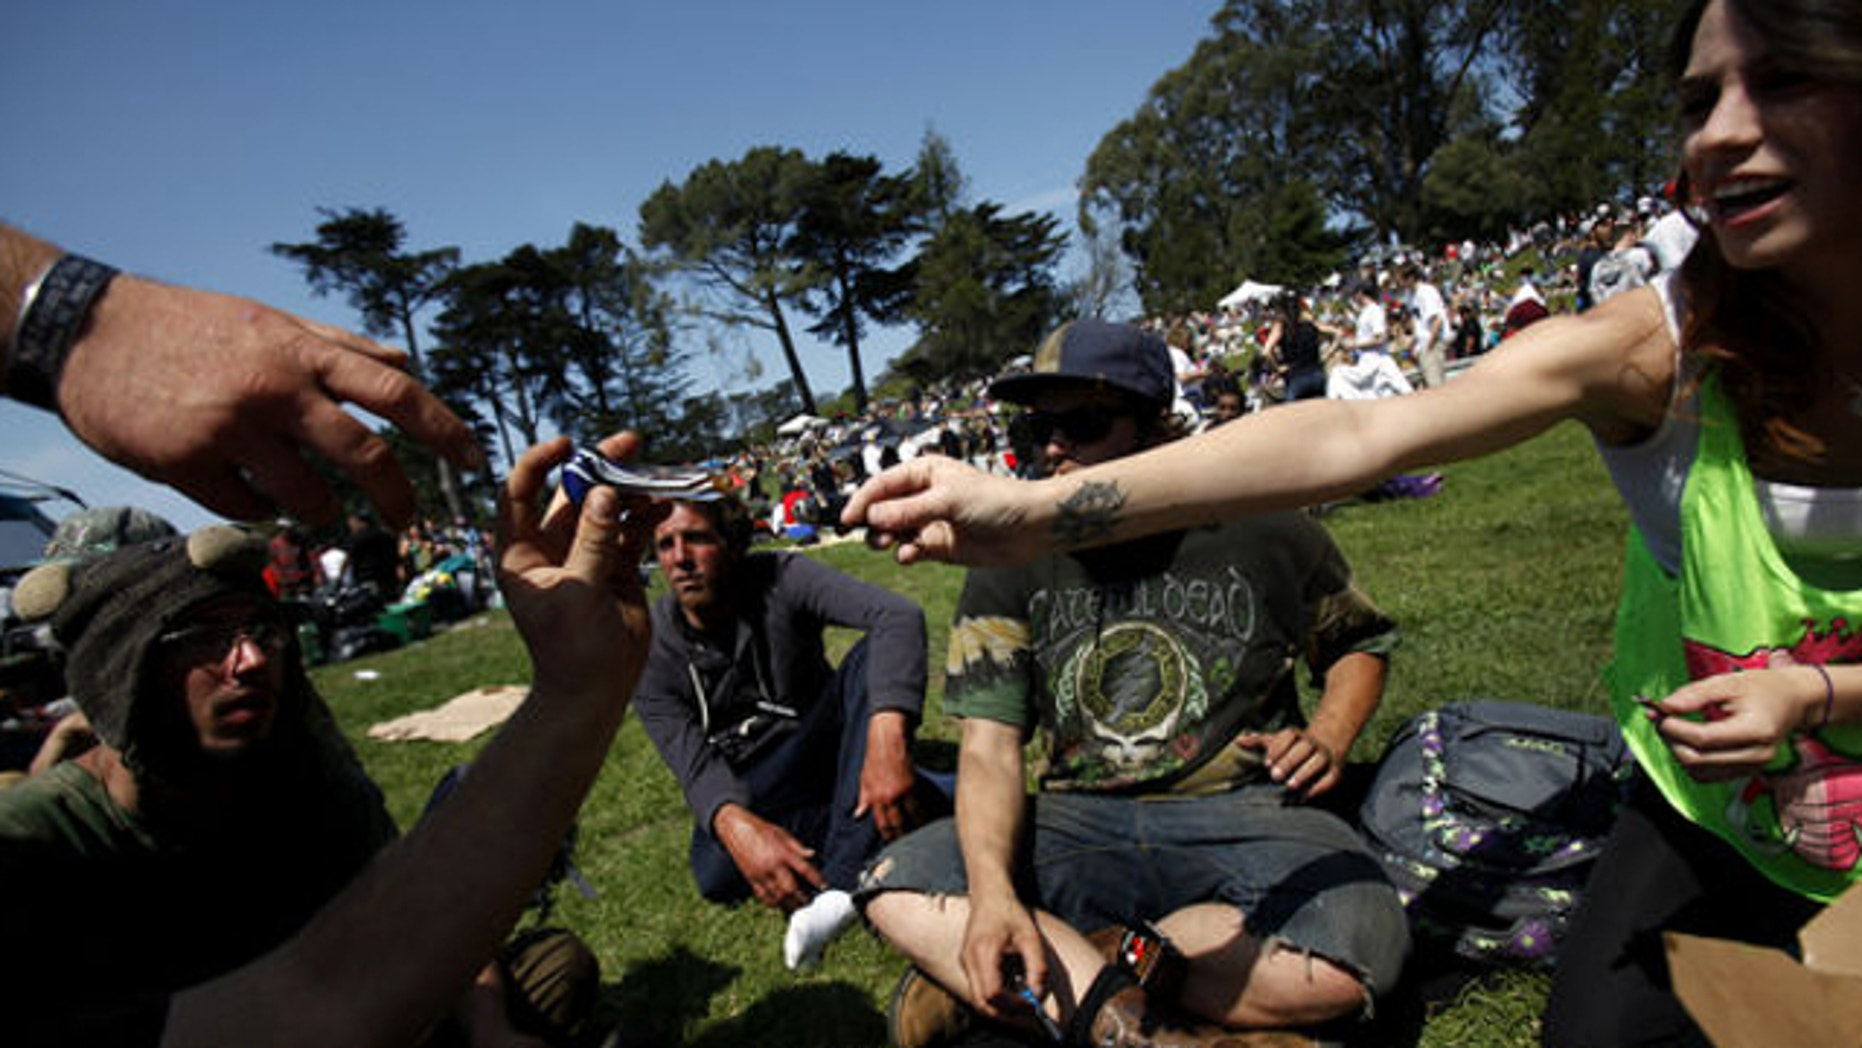 April 20, 2014: Jessica Morales, far right, passes a pipe to Brian Strelow, hand at left, during 420 celebrations at Hippie Hill in Golden Gate Park in San Francisco, Calif.